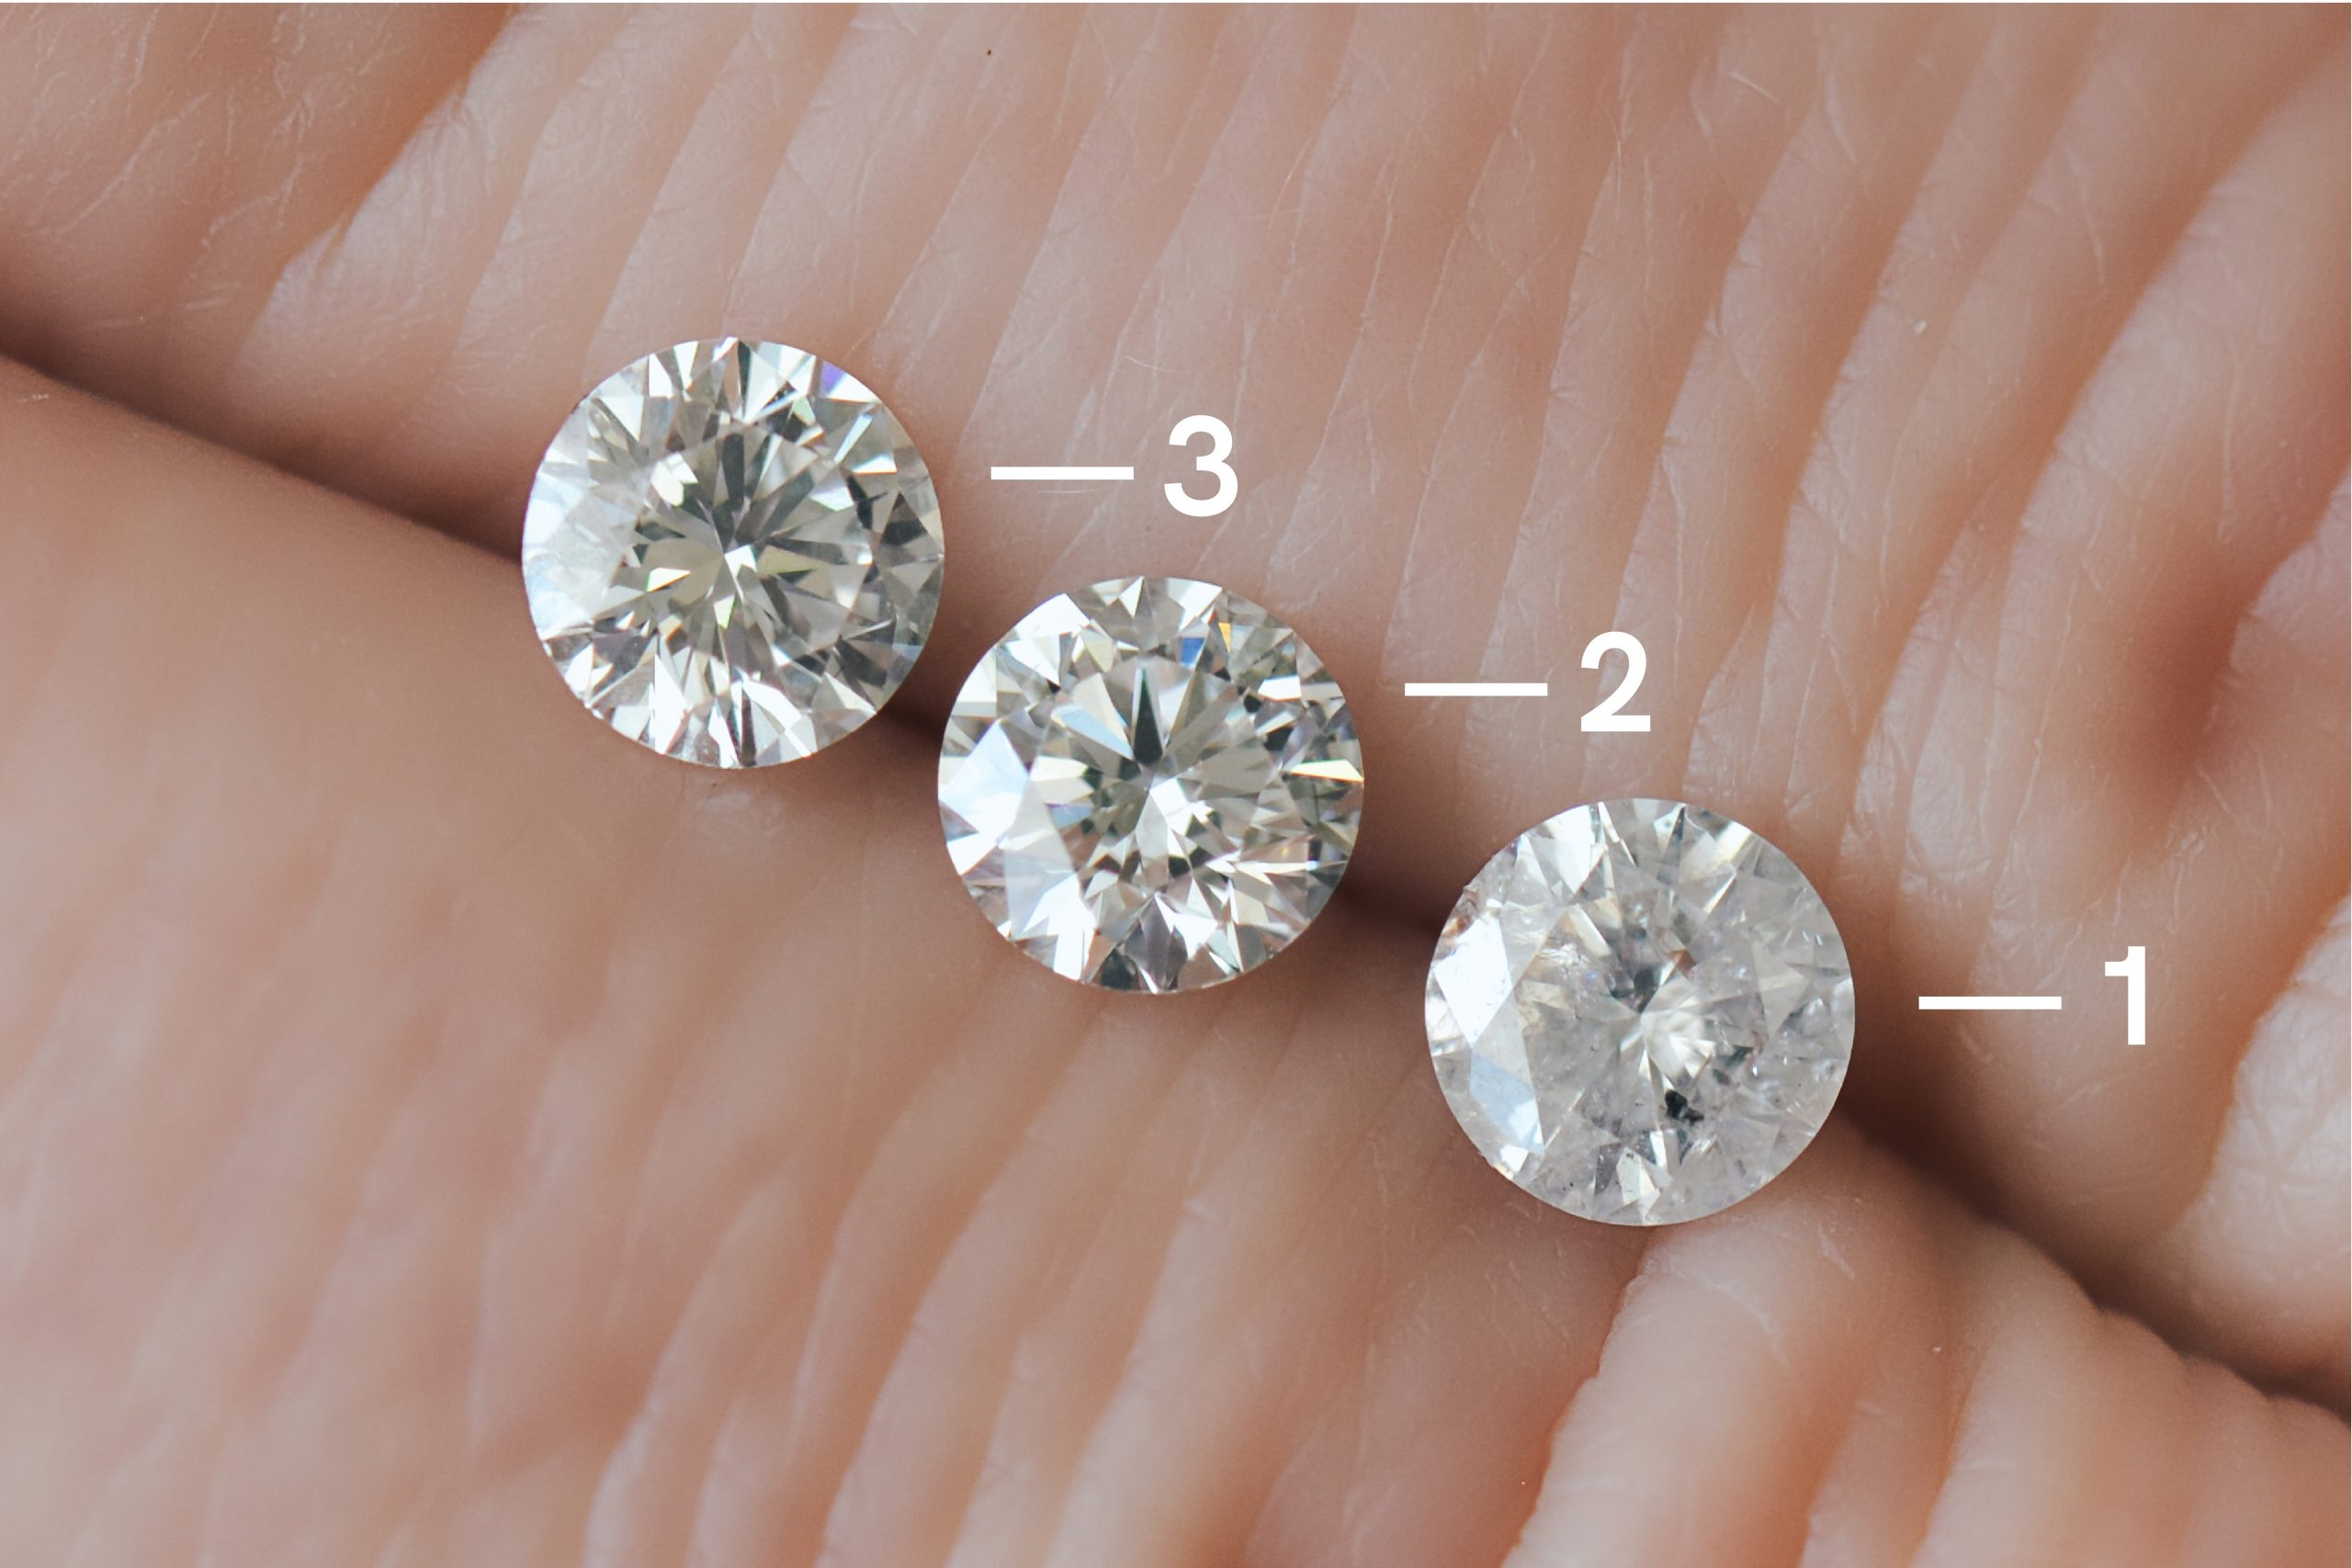 3 round diamonds clarity comparison